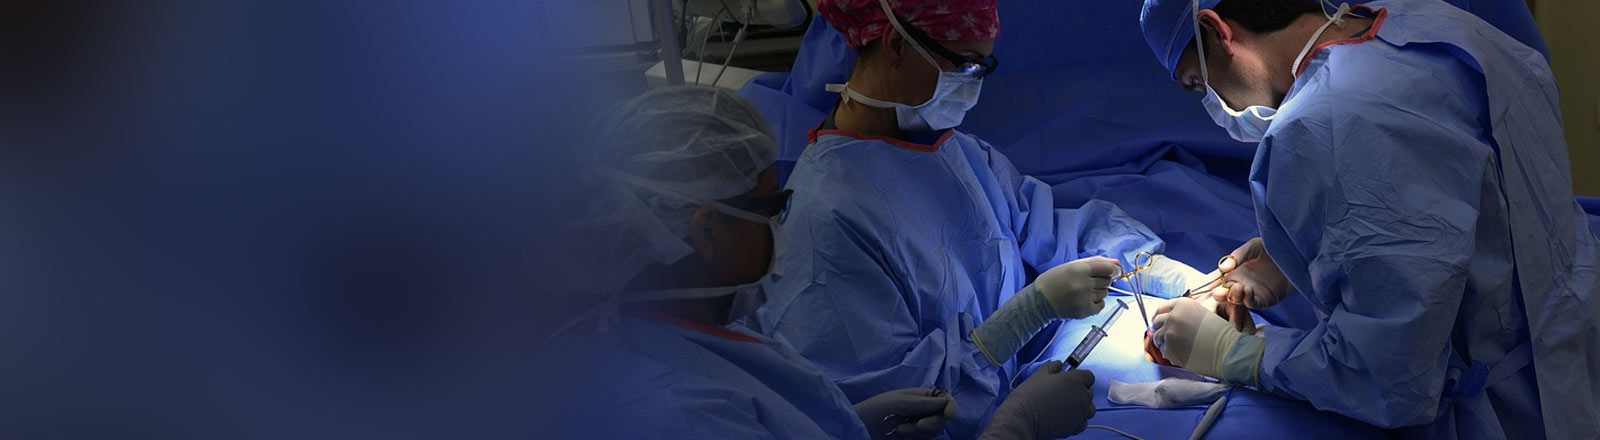 Hernia Surgery at Galaxy Care Hospital